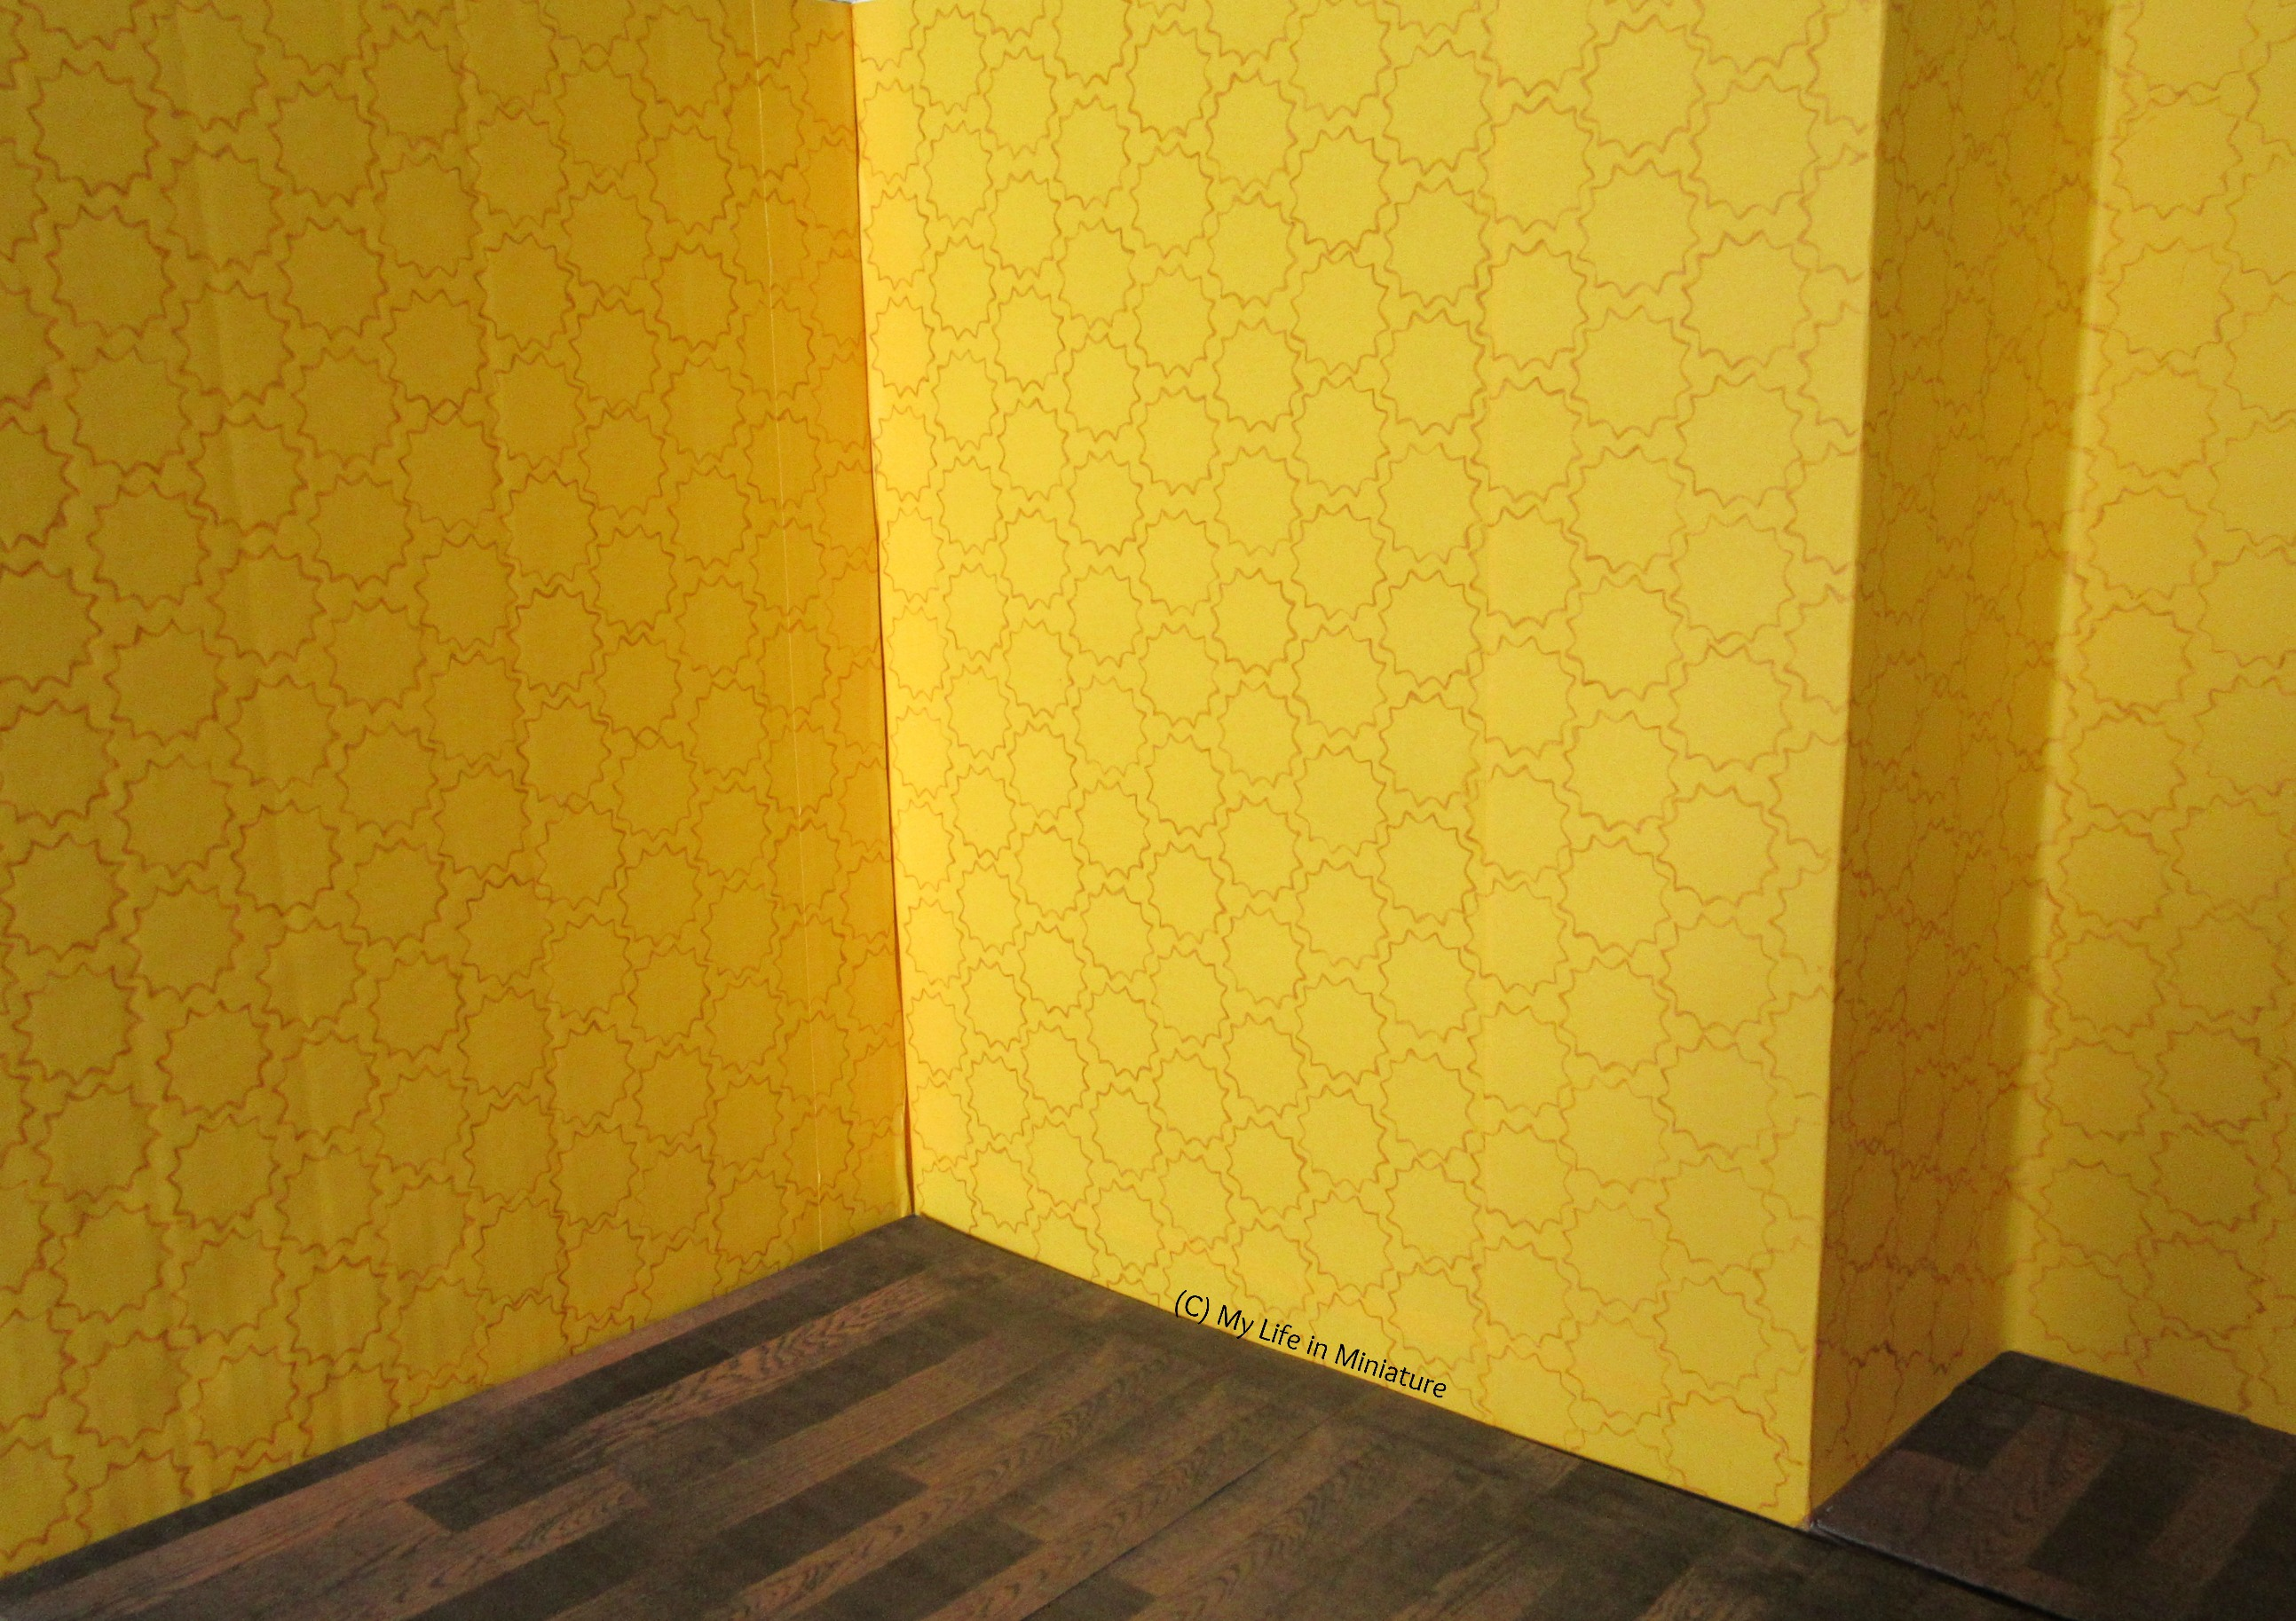 Shot of the interior of the store, yellow walls completely covered in stencilling.